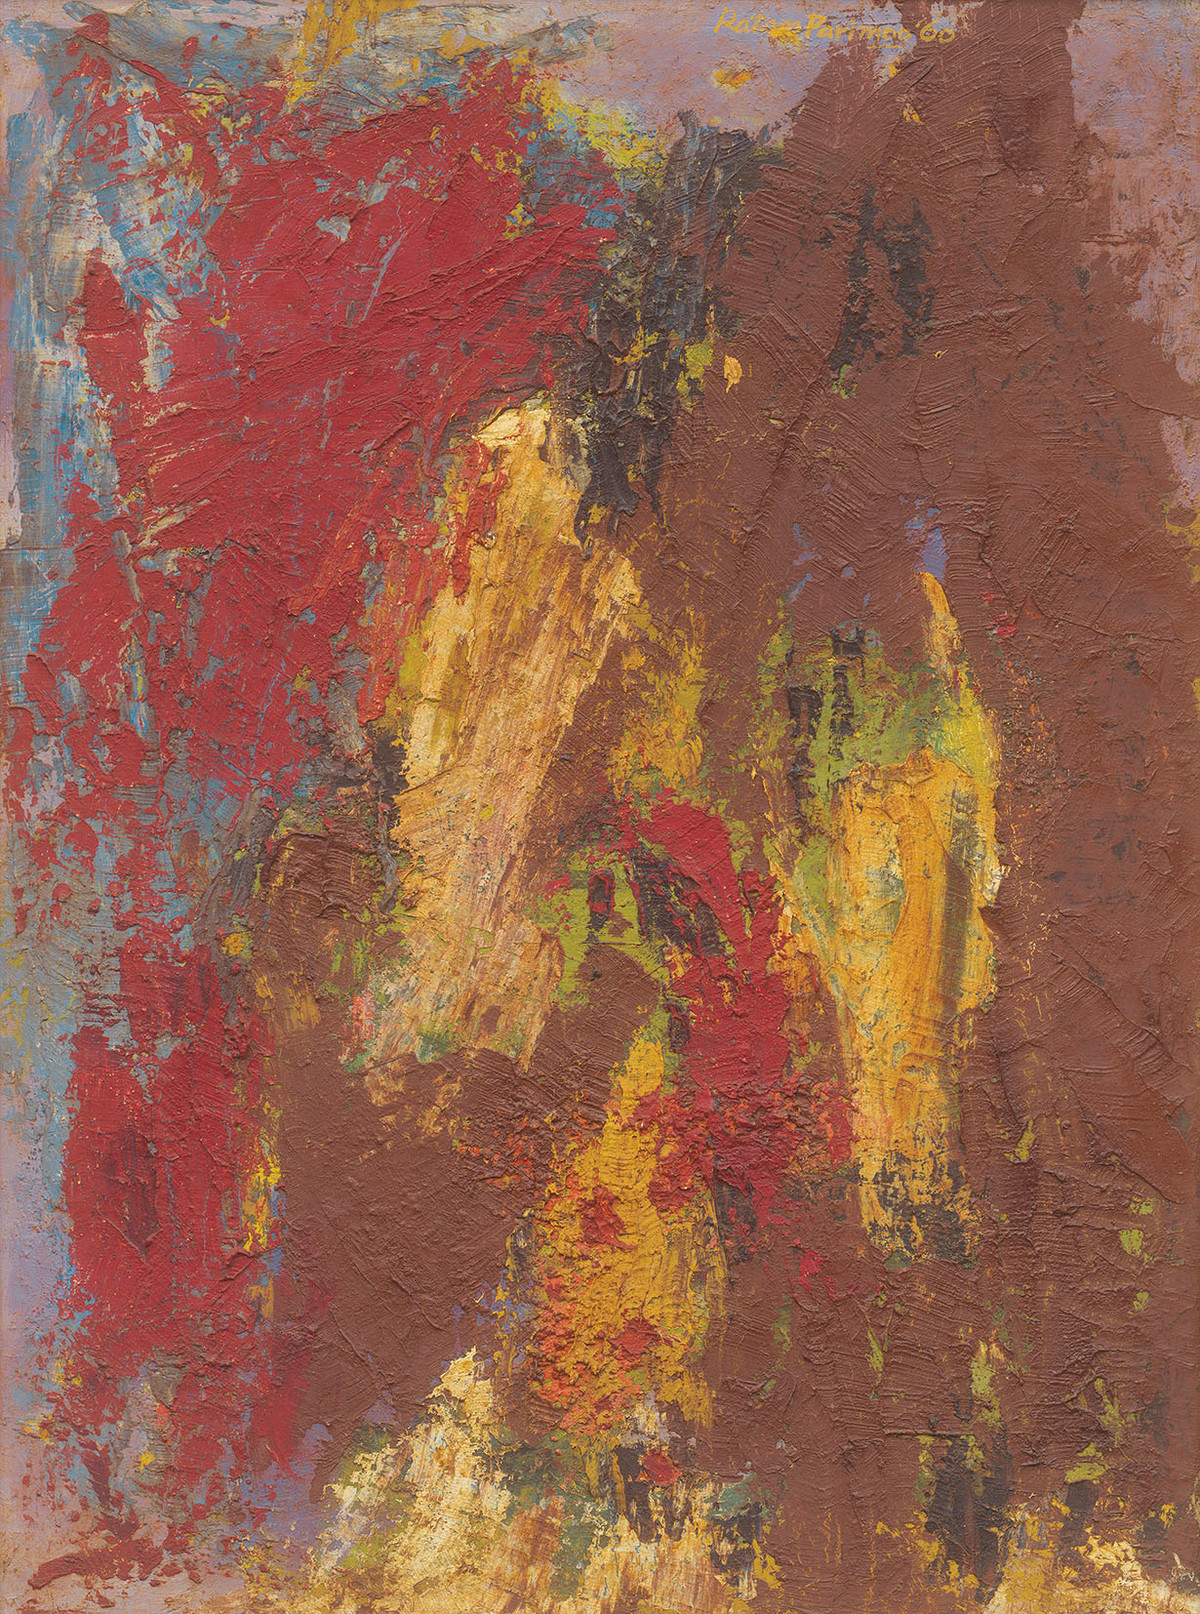 Composition by Ratan Parimoo, Abstract Painting, Mixed Media on Board, Spicy Mix color